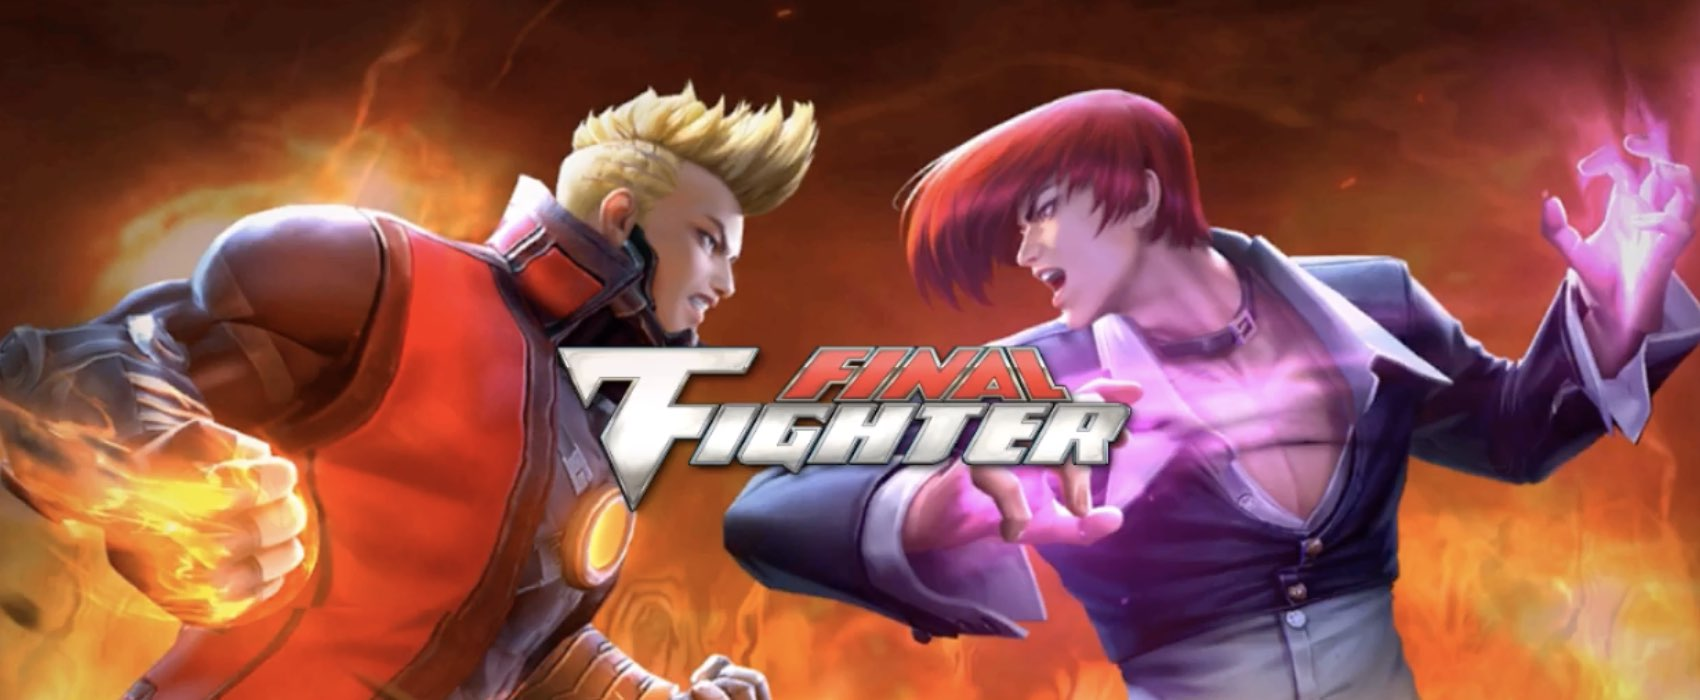 Final Fighter hack cheats (vigor, cloning pod, gold, characters)